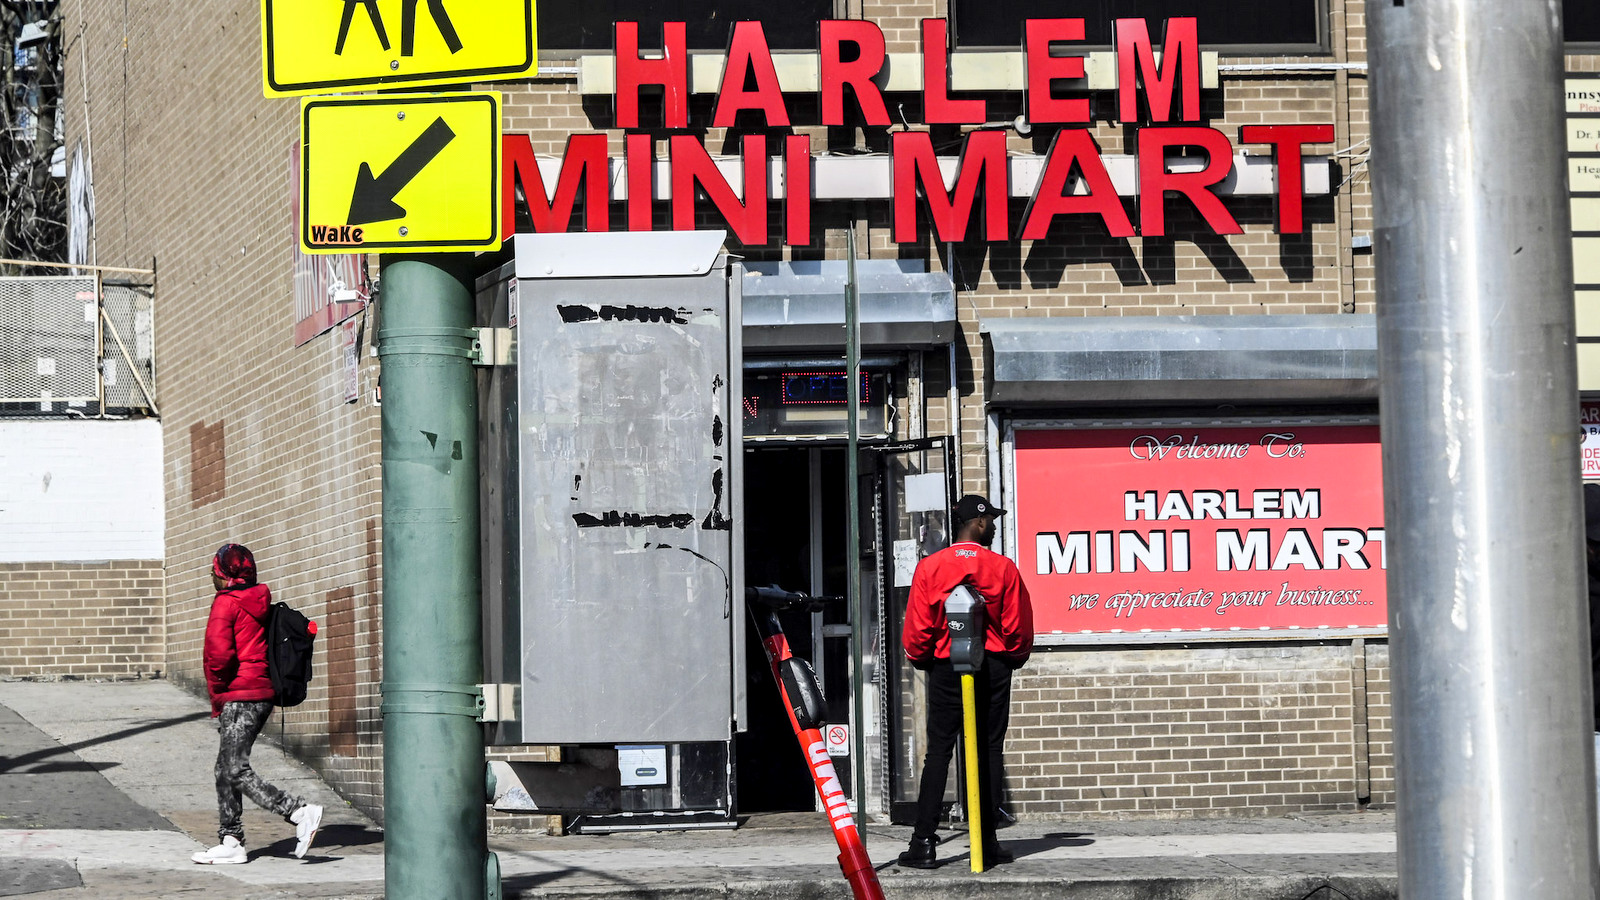 The Harlem Mini Mart on Pennsylvania Avenue sells rice, breakfast cereal and other staple items. (J.M. Giordano)